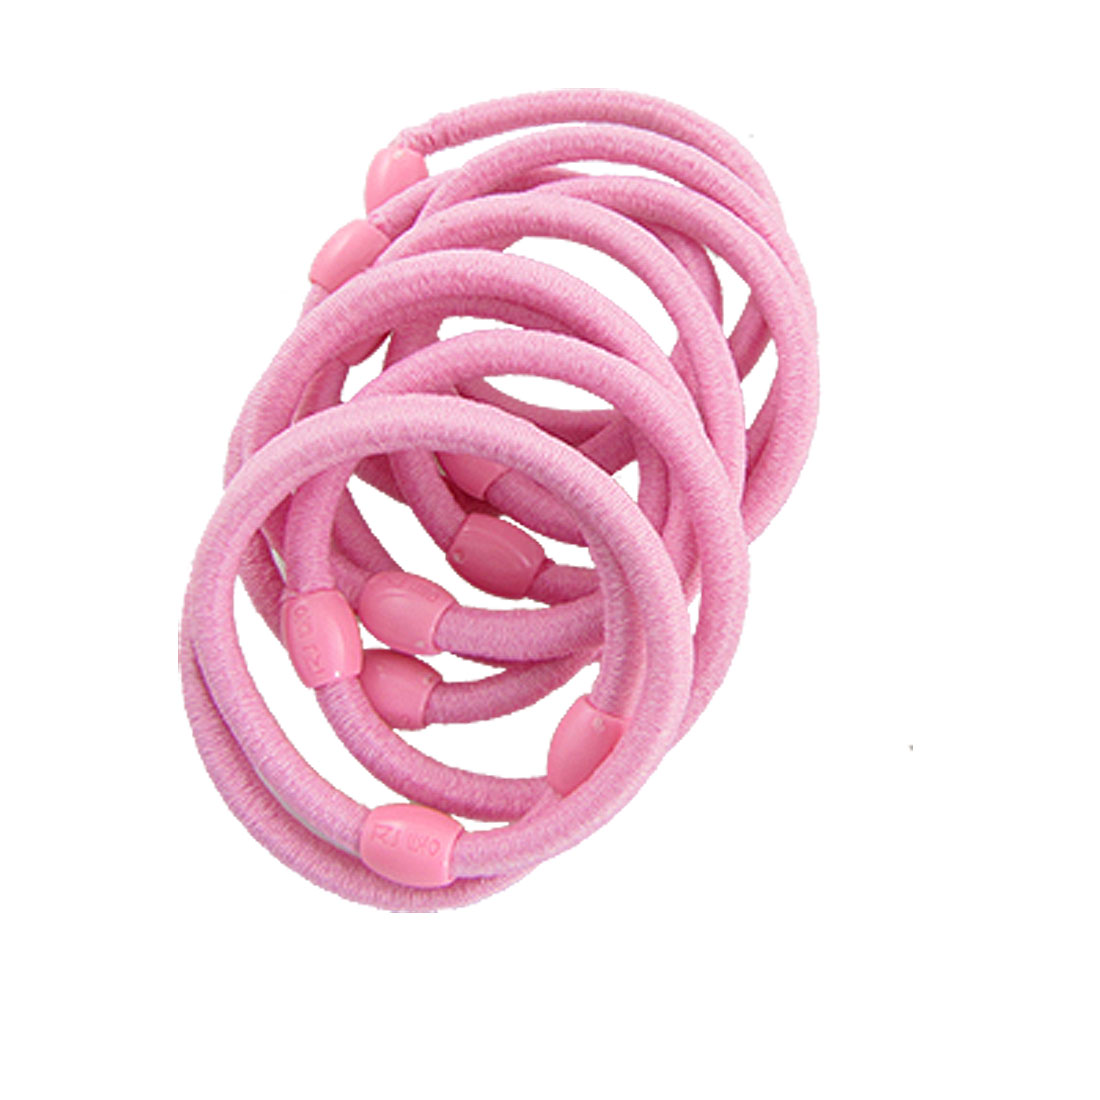 10 Pcs Pink Rubber Stretchy Oval Beads Hair Tie Ponytail Holders